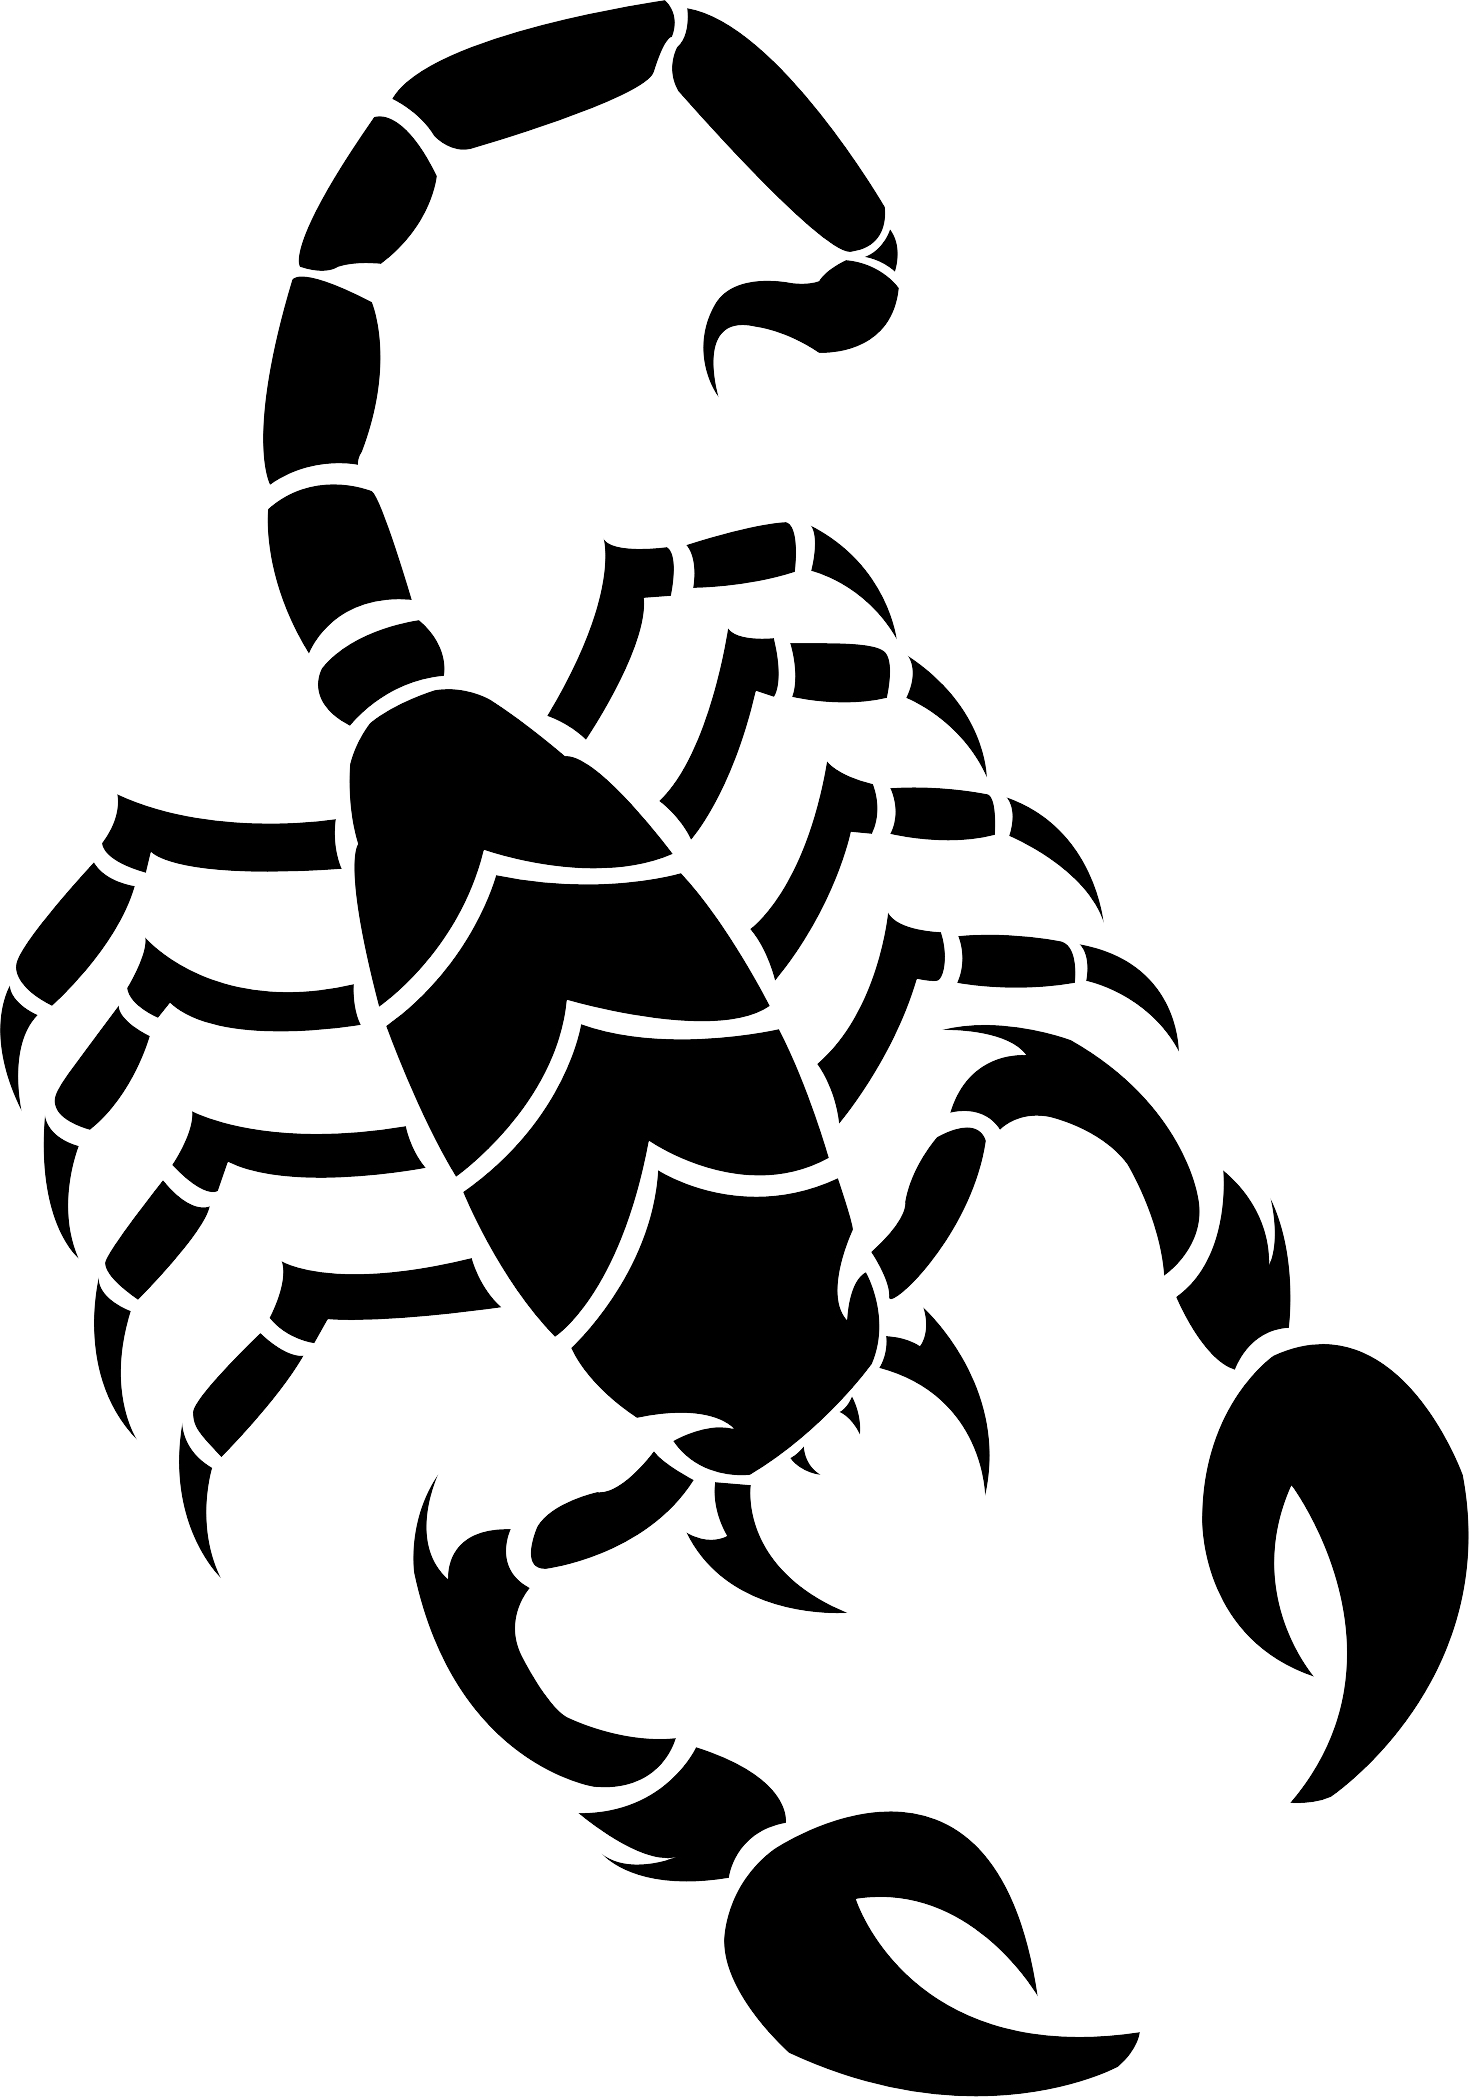 Scorpion tattoo silhouette PNG